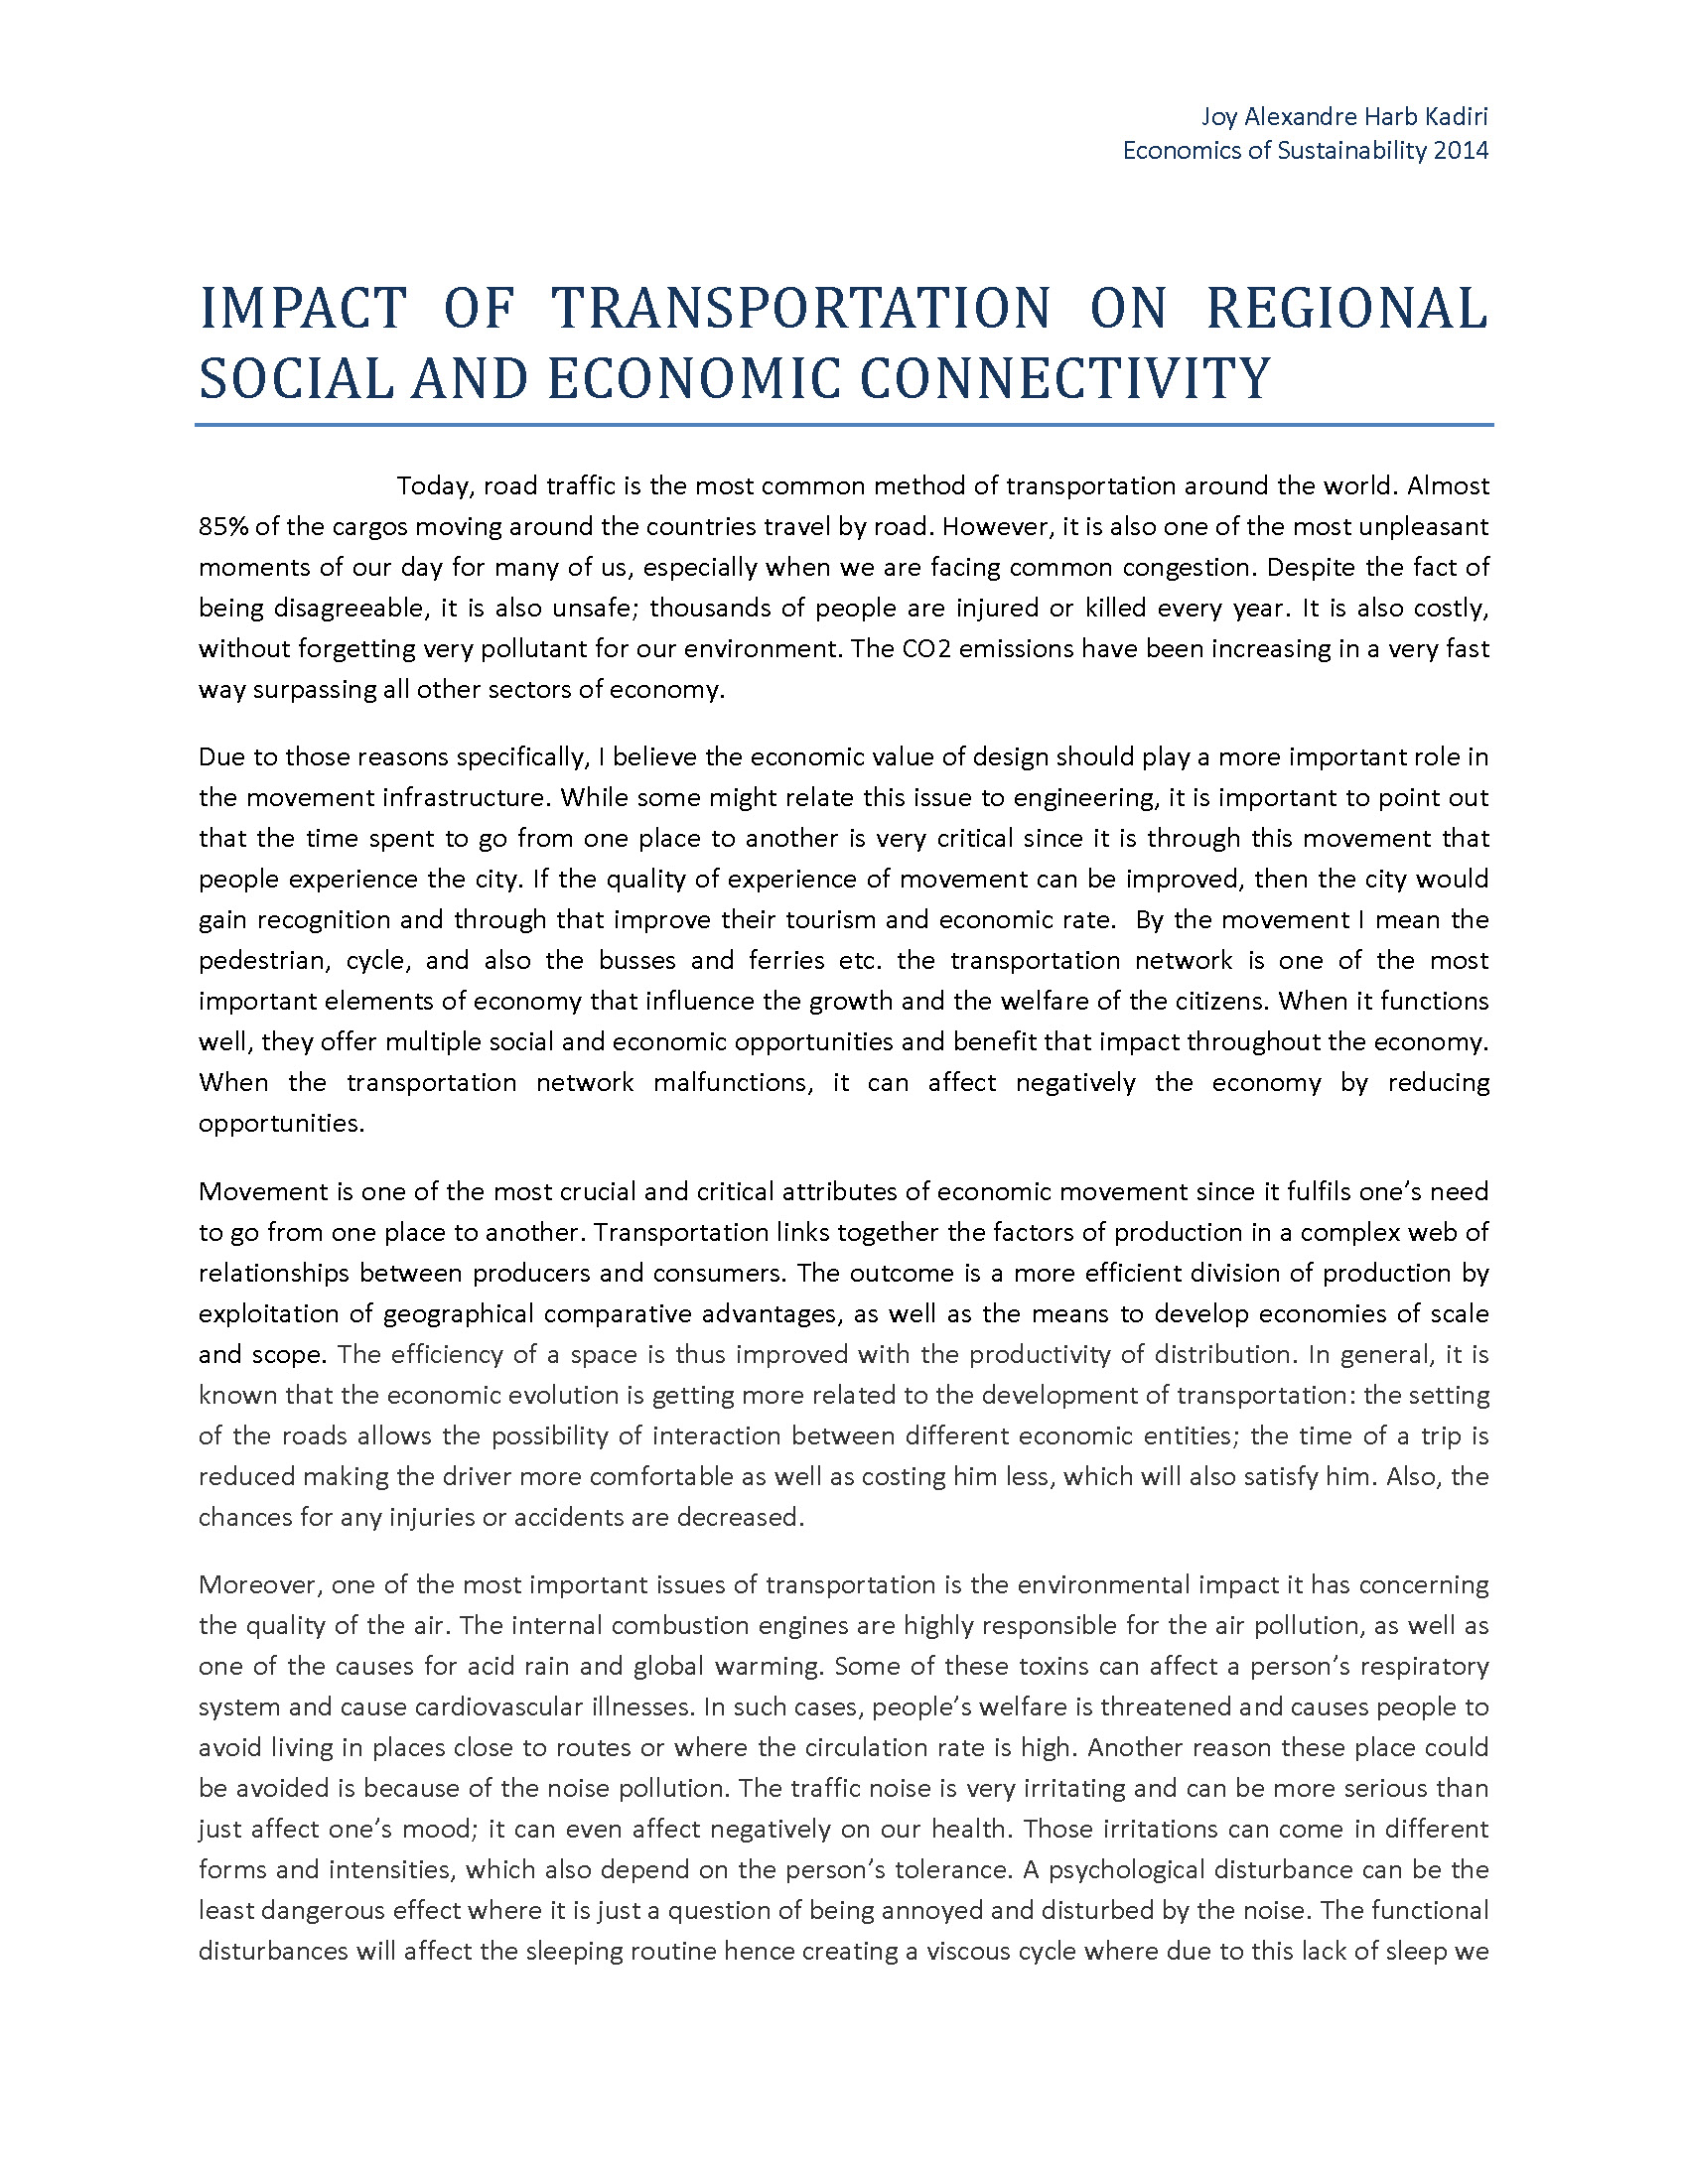 transportations effect on social and economic 1 assessment of economic, social and environmental effects of rail urban projects rocío cascajo transyt – transport research centre universidad politécnica de madrid.